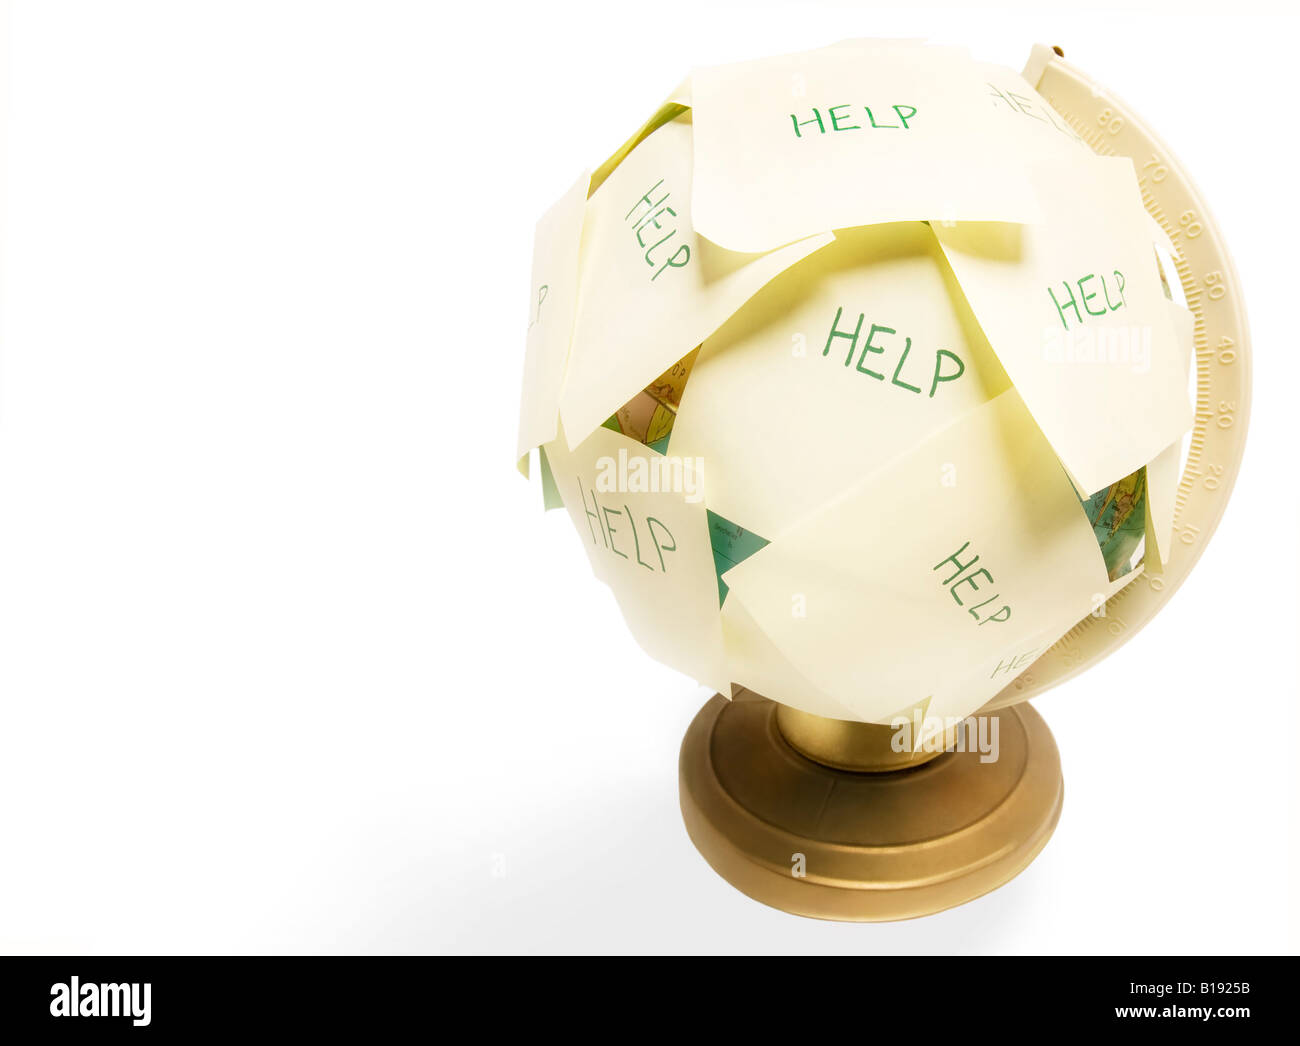 Globe that needs help - Stock Image